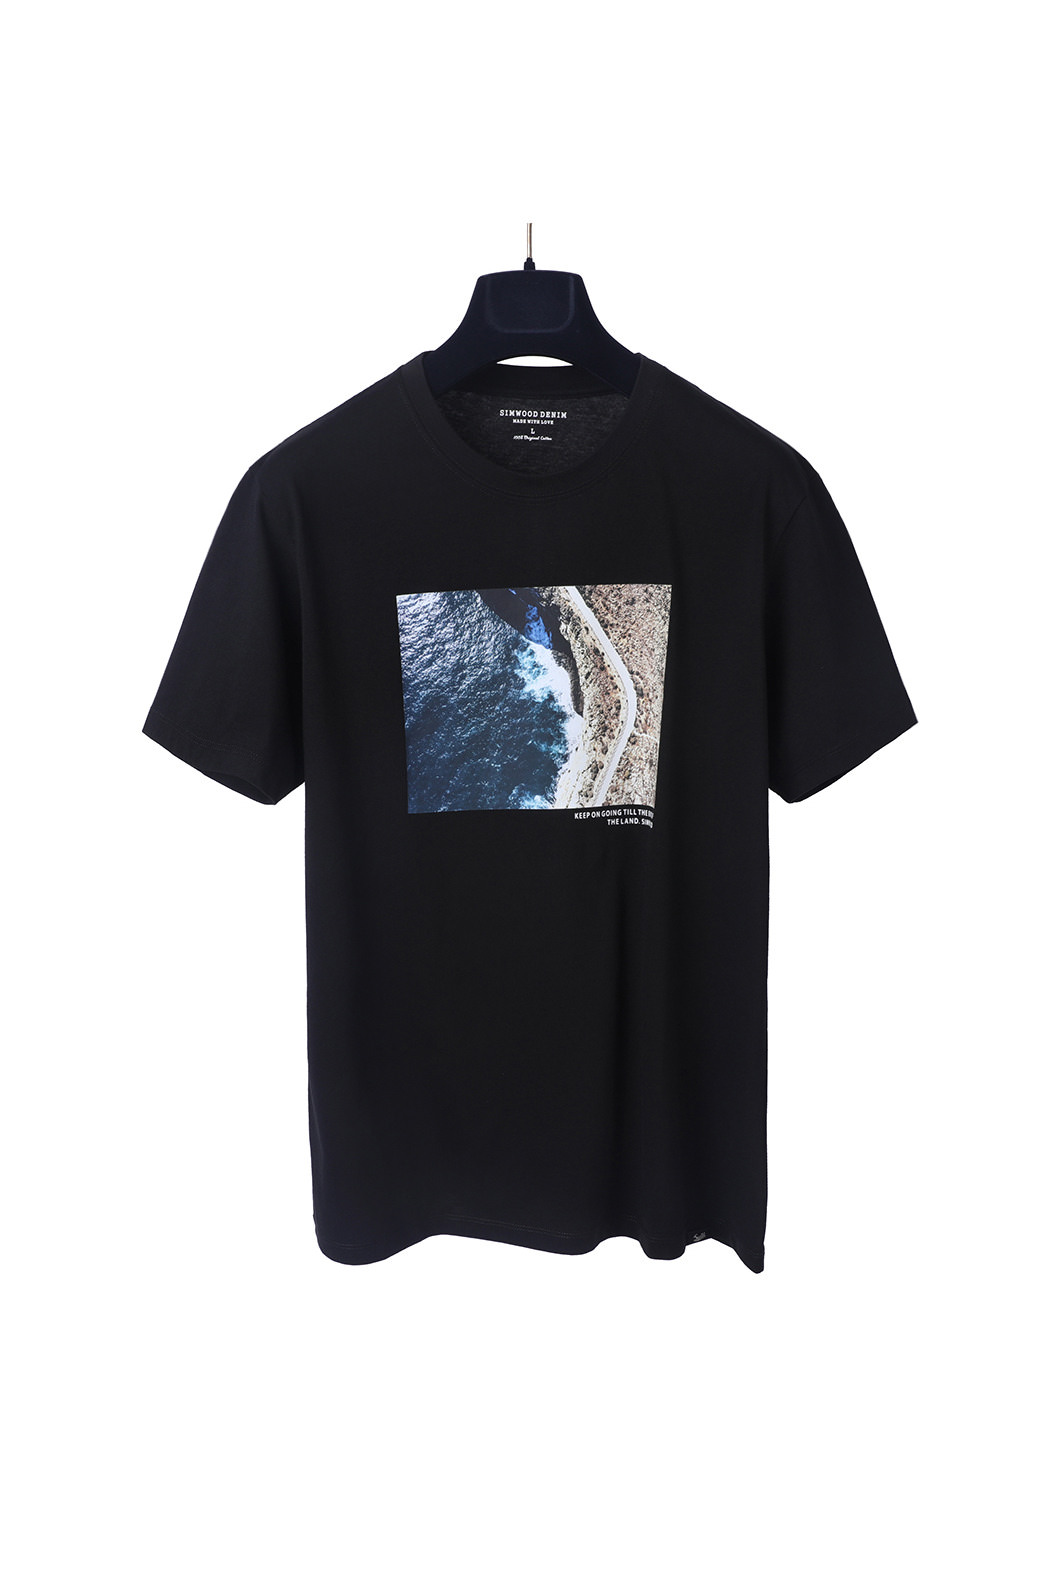 END OF THE LAND T-SHIRTS-BLACK소량 재입고